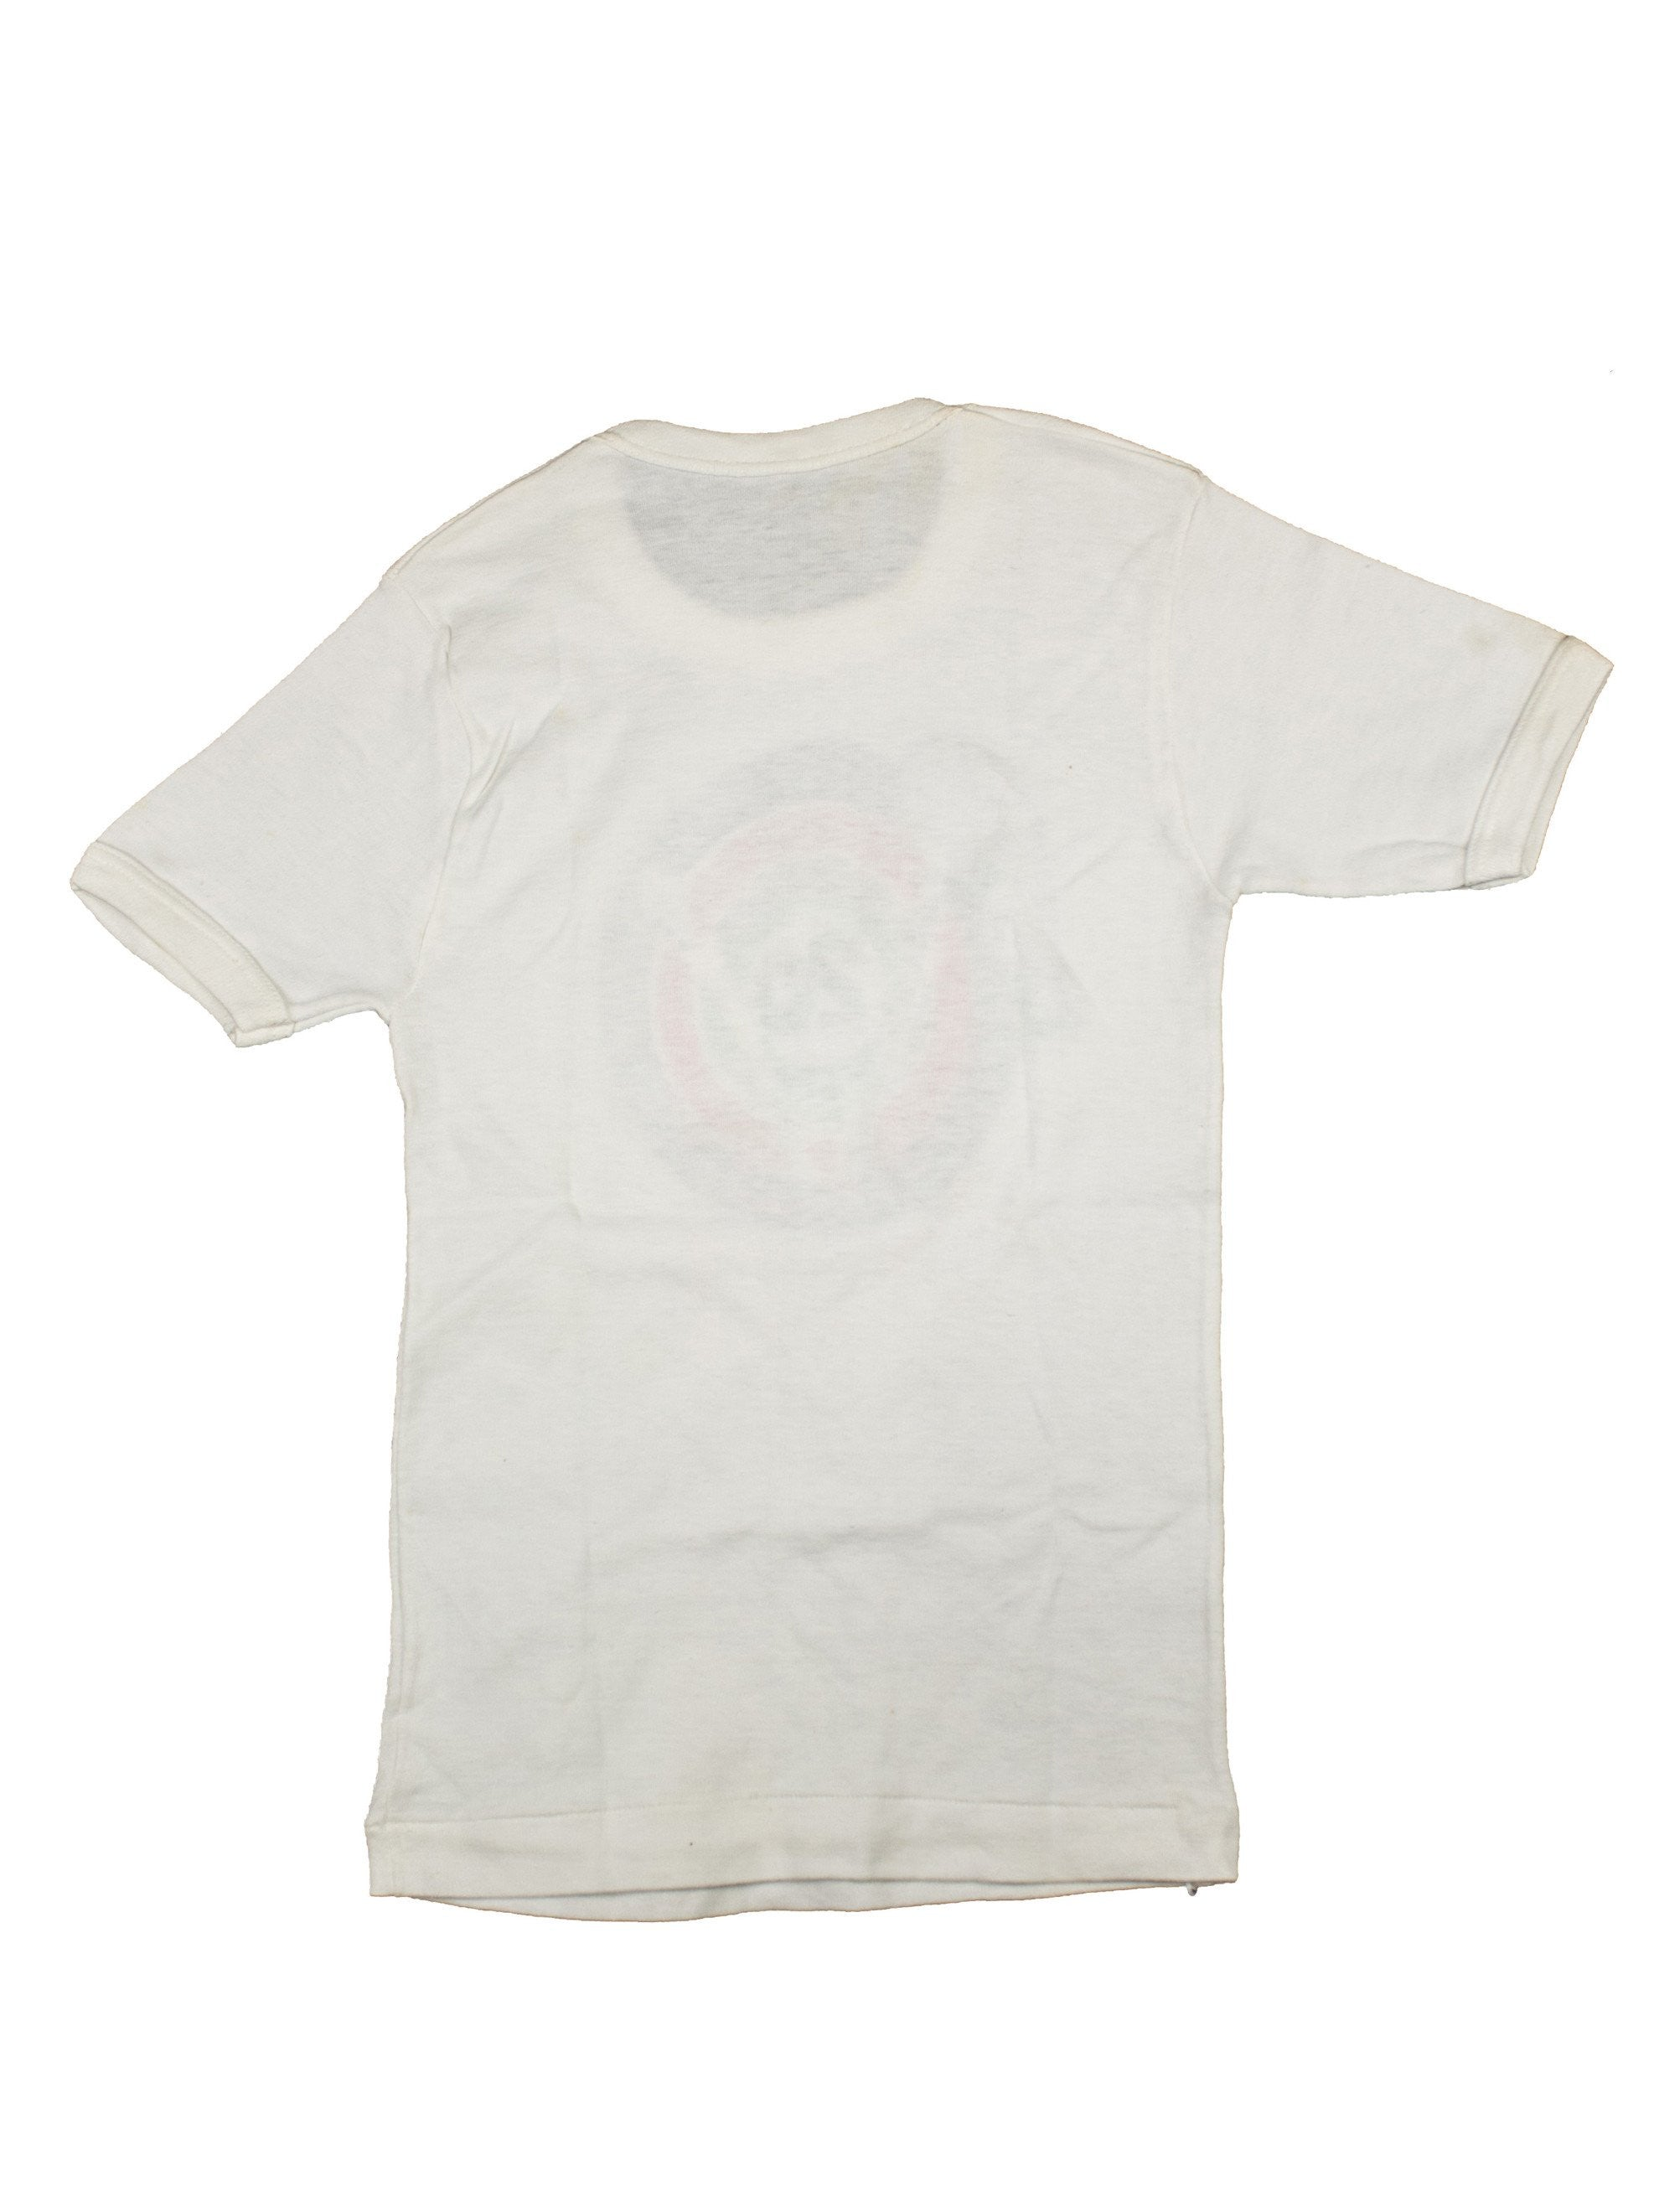 White 1983 Toddler's Kenyan Independence Commemorative T-Shirt 2